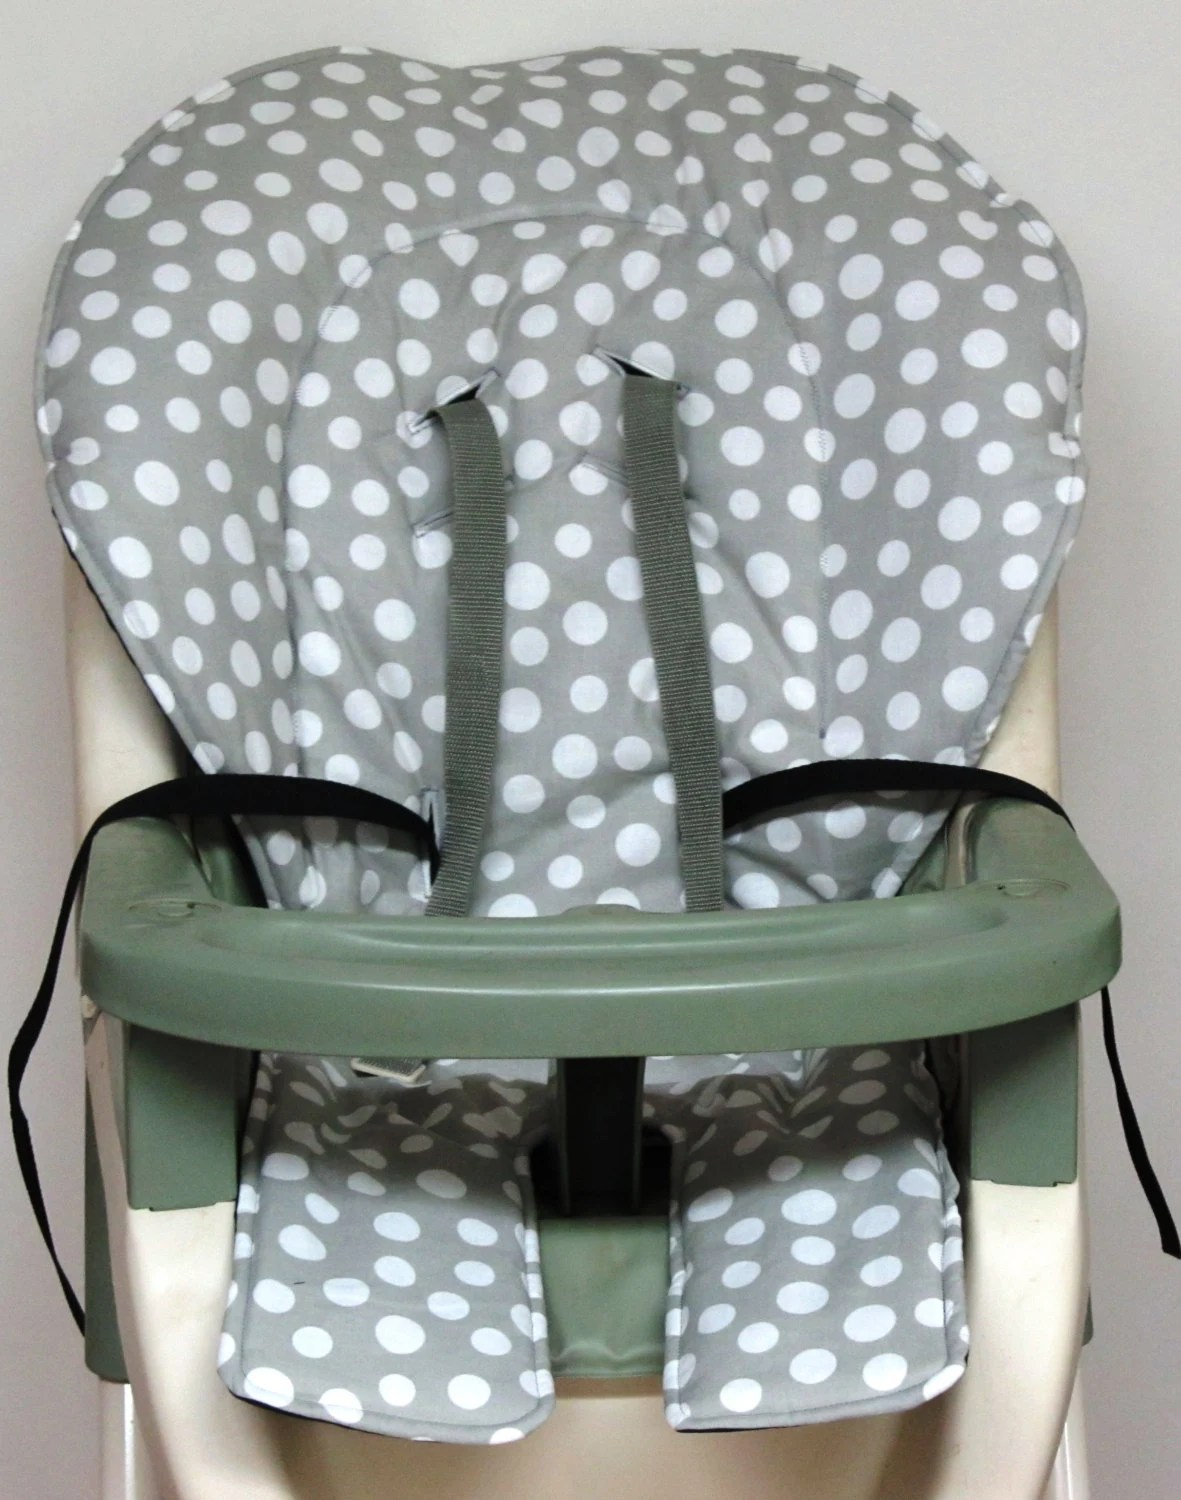 high chair cushions best bean bag chairs for gaming graco ship ready replacement cover padcushion